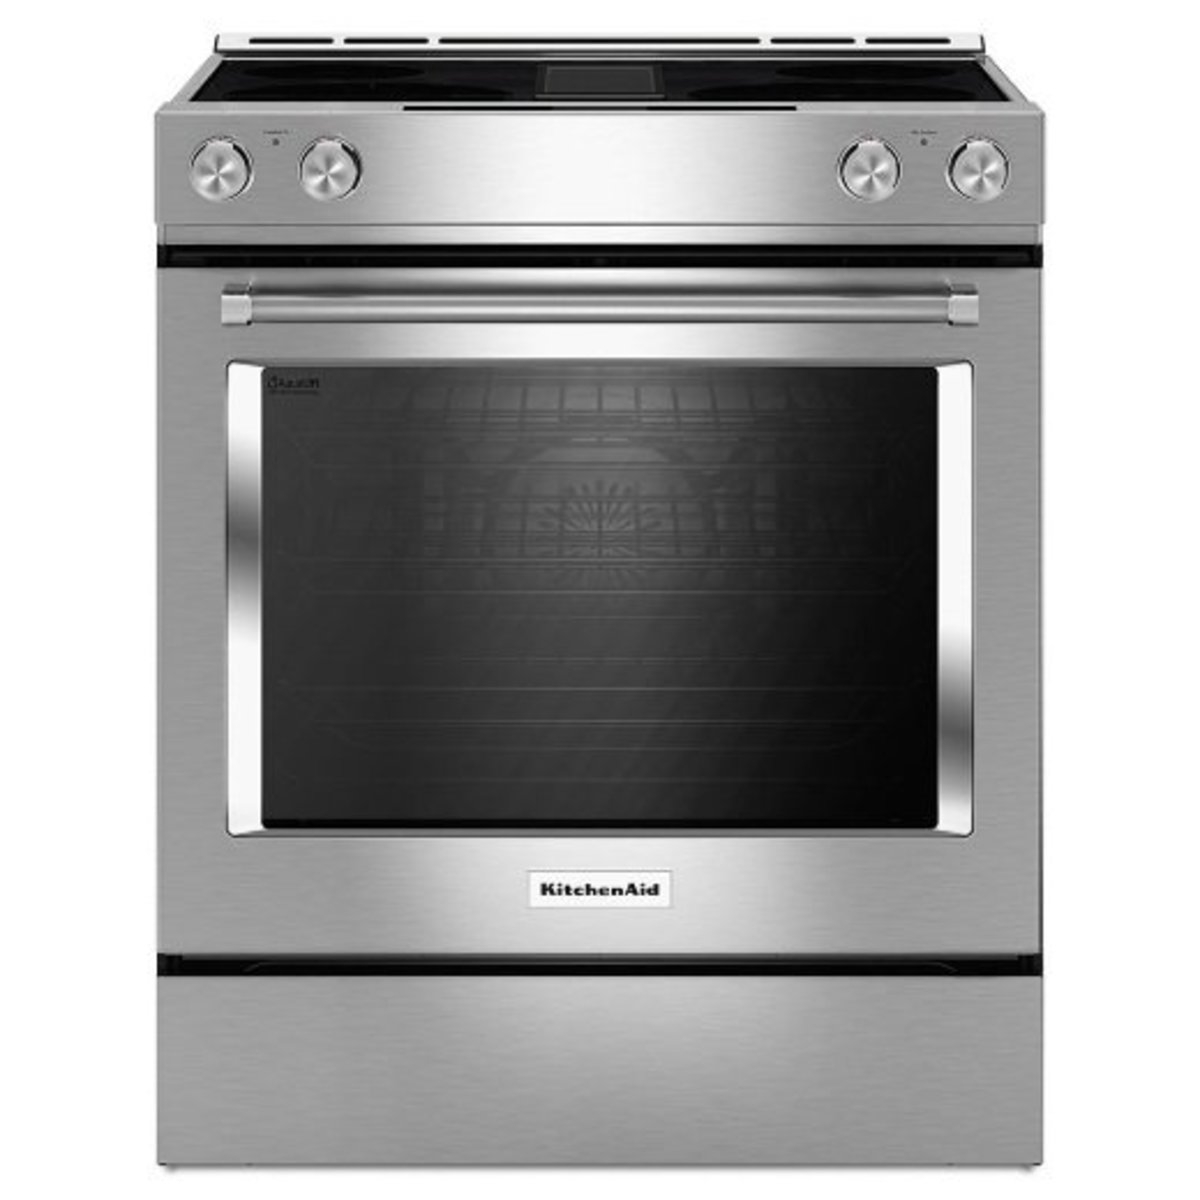 The KitchenAid KSEG950ESS slide in electric range with downdraft is aesthetically weaker than the Jenn Air in my opinion.